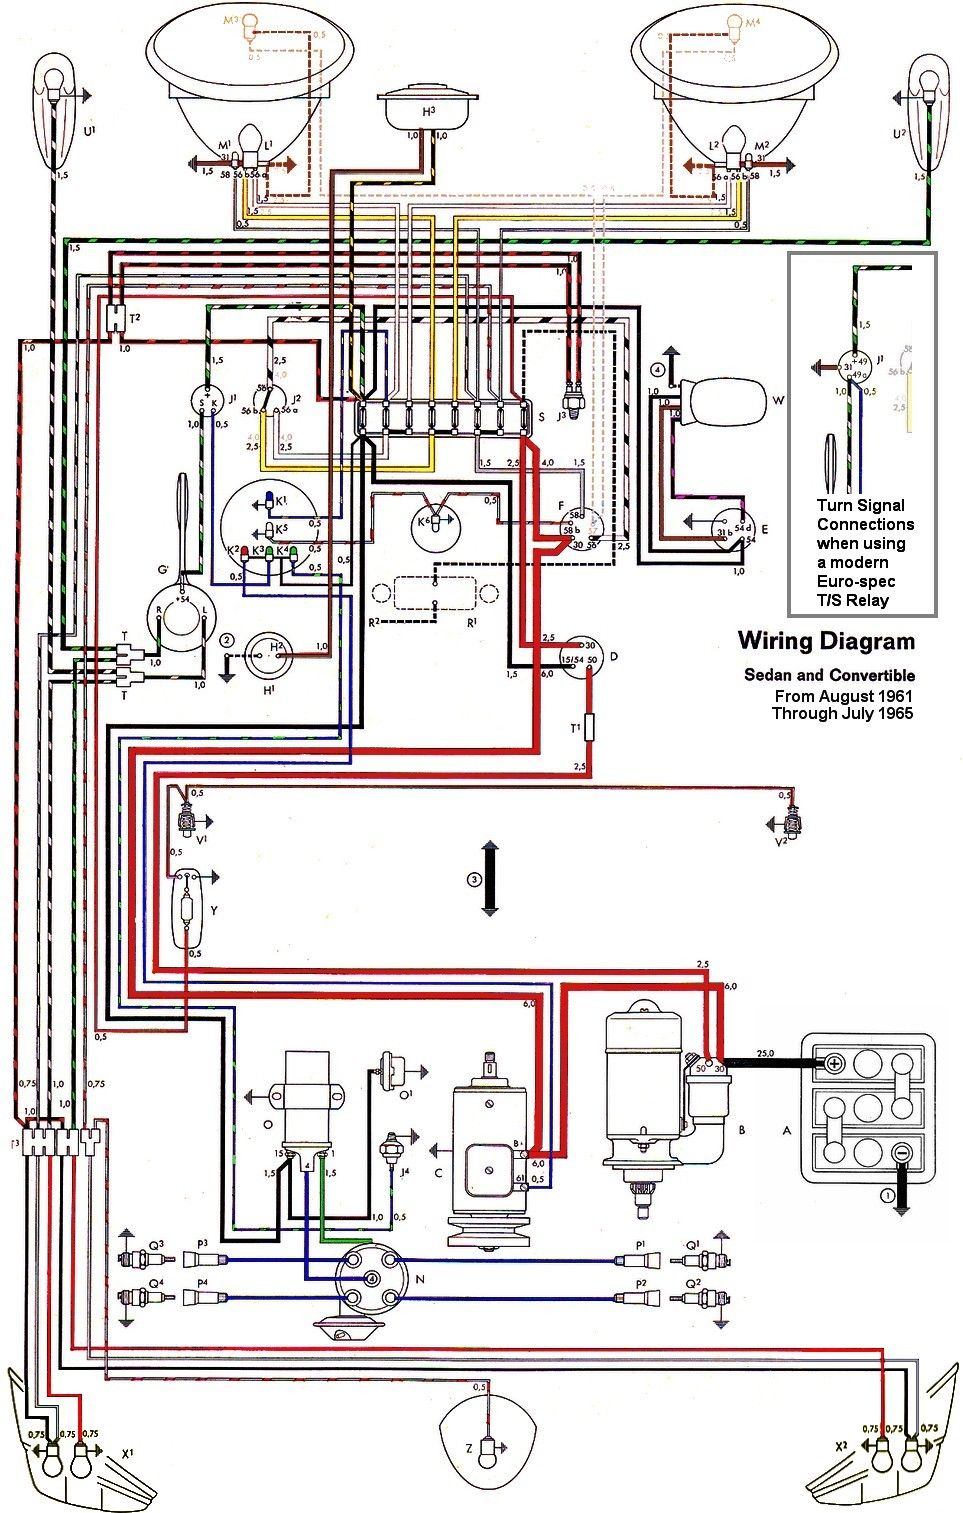 63 vw wiring diagram schematics wiring diagrams u2022 rh seniorlivinguniversity co 1973 vw beetle wiring schematic 1970 vw beetle wiring schematic